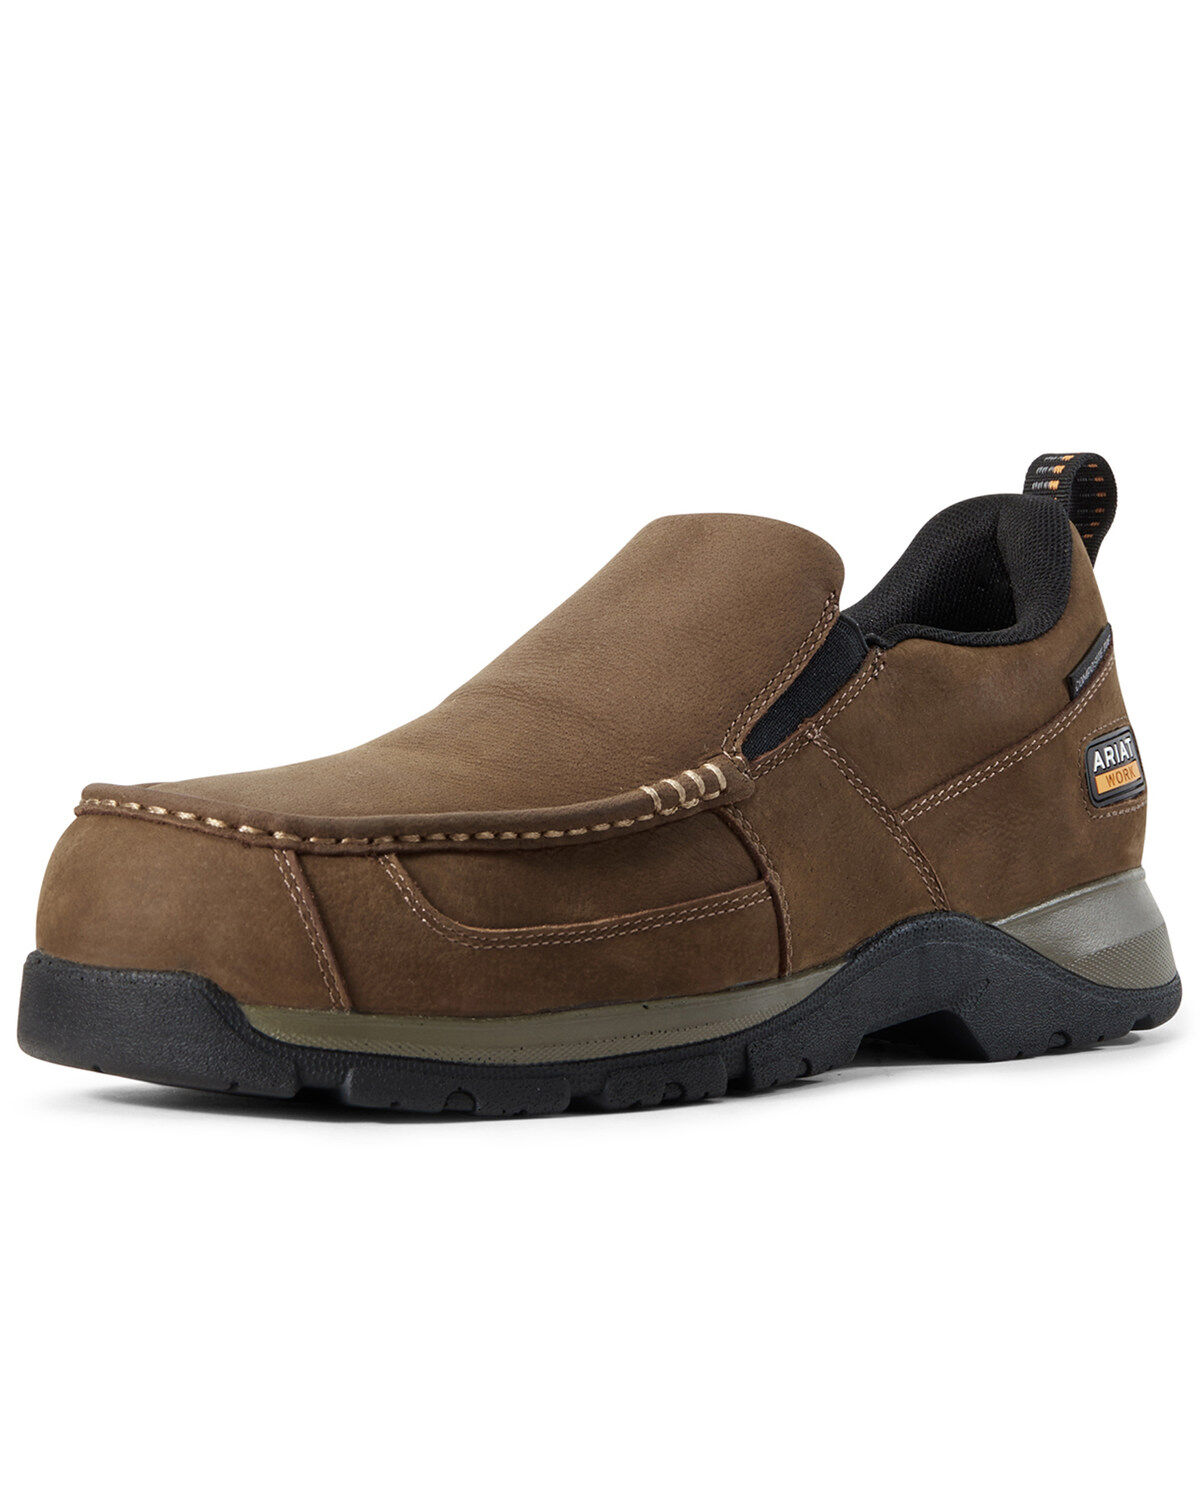 Name Brand Slip Resistant Shoes